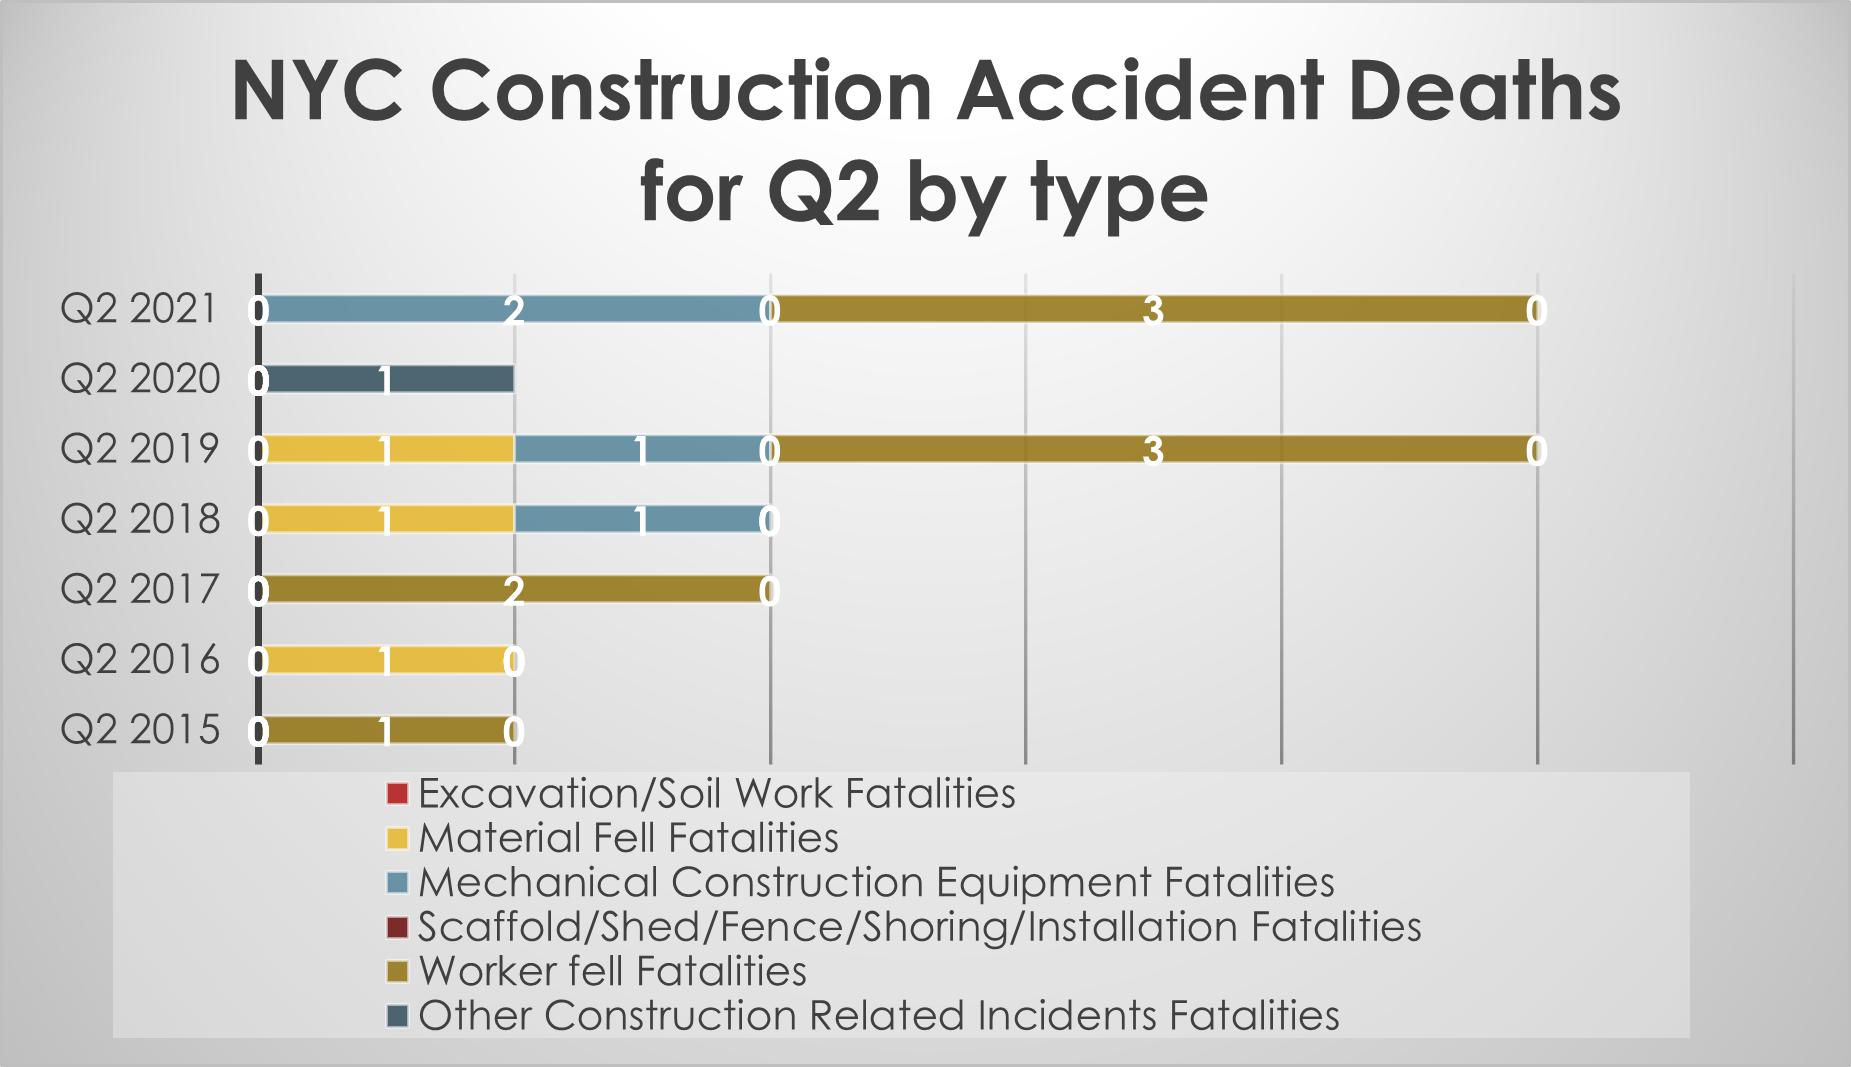 Construction worker fatalities by type of accidents Q2 NYC